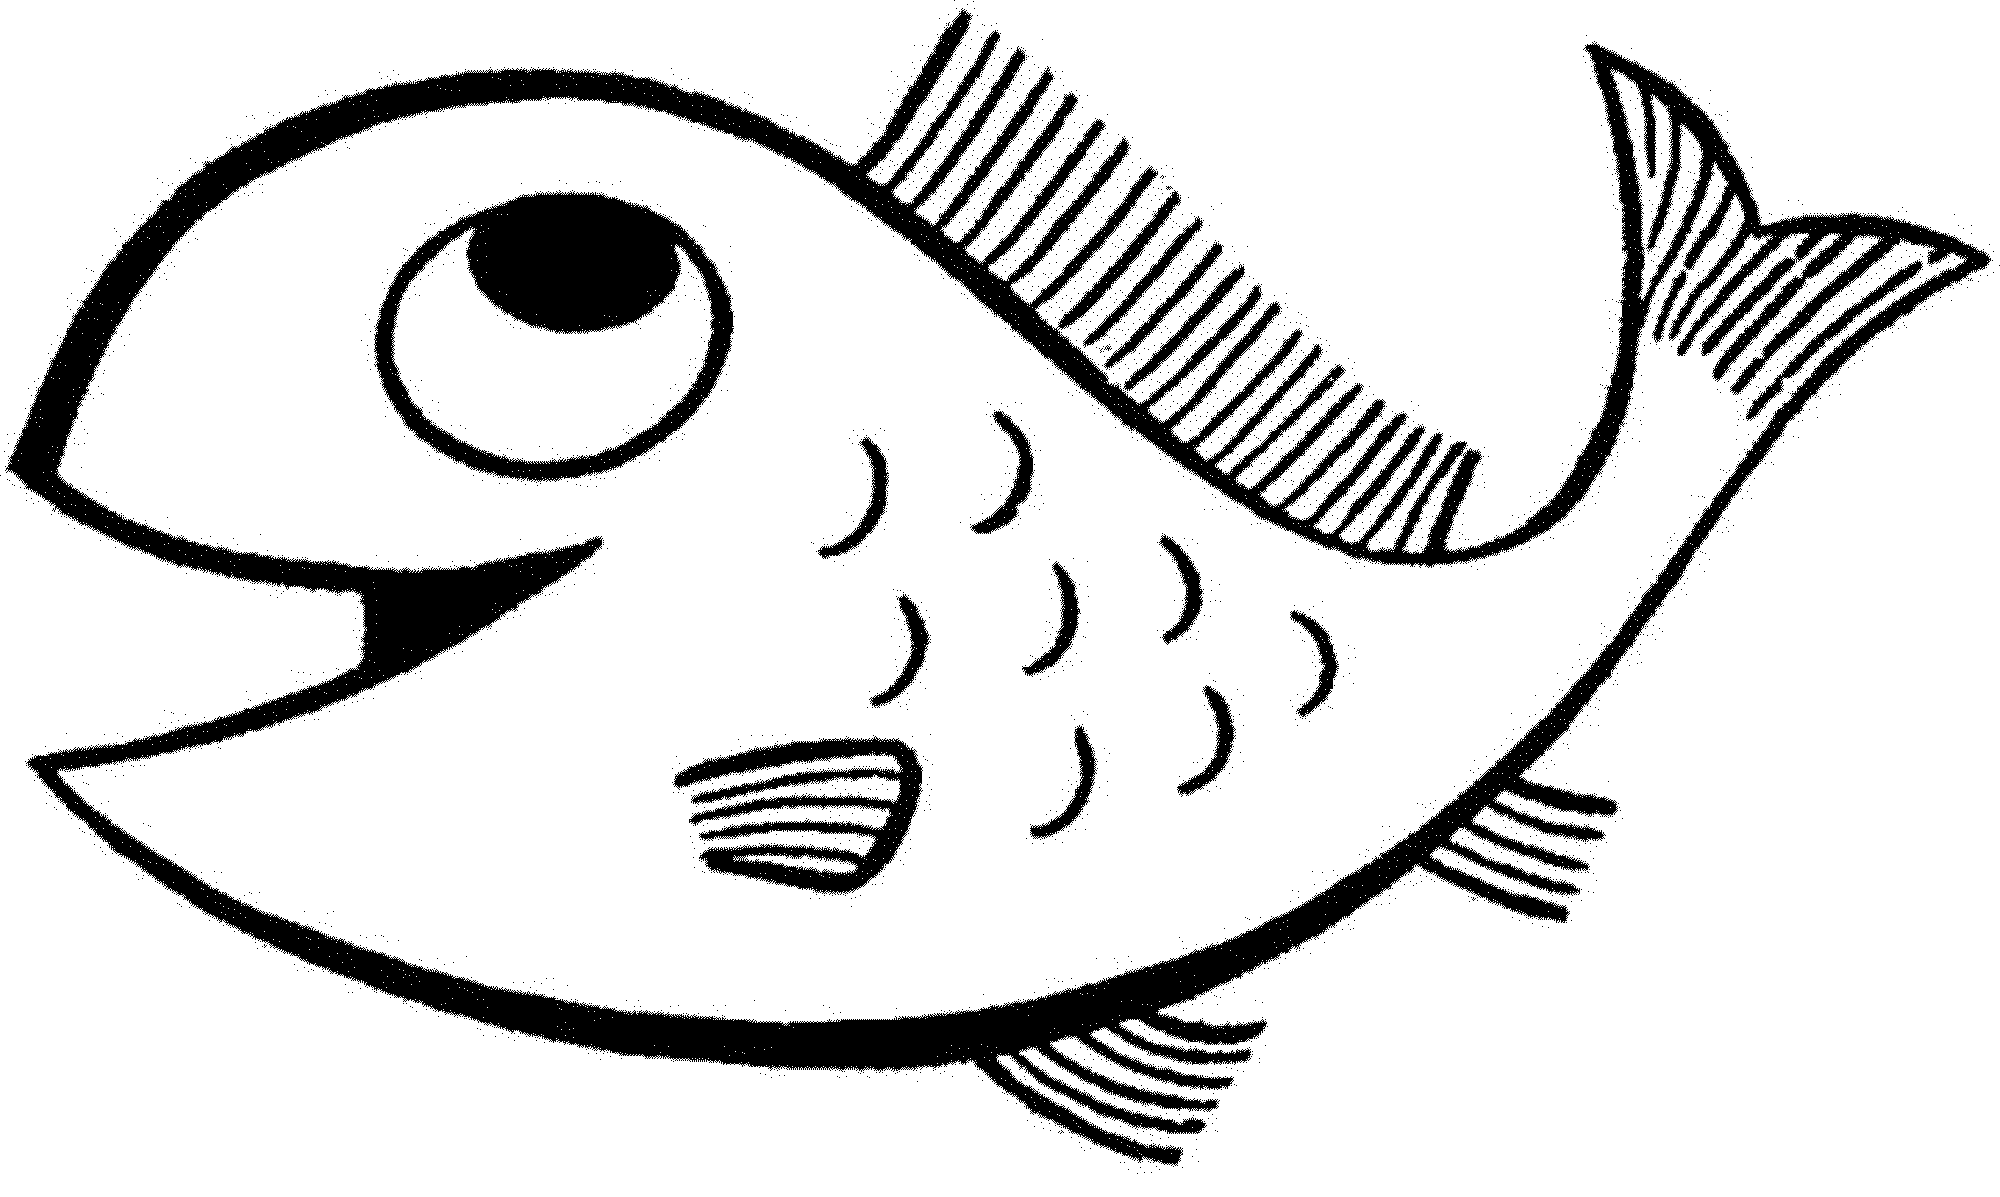 colouring picture of fish print download cute and educative fish coloring pages picture of fish colouring